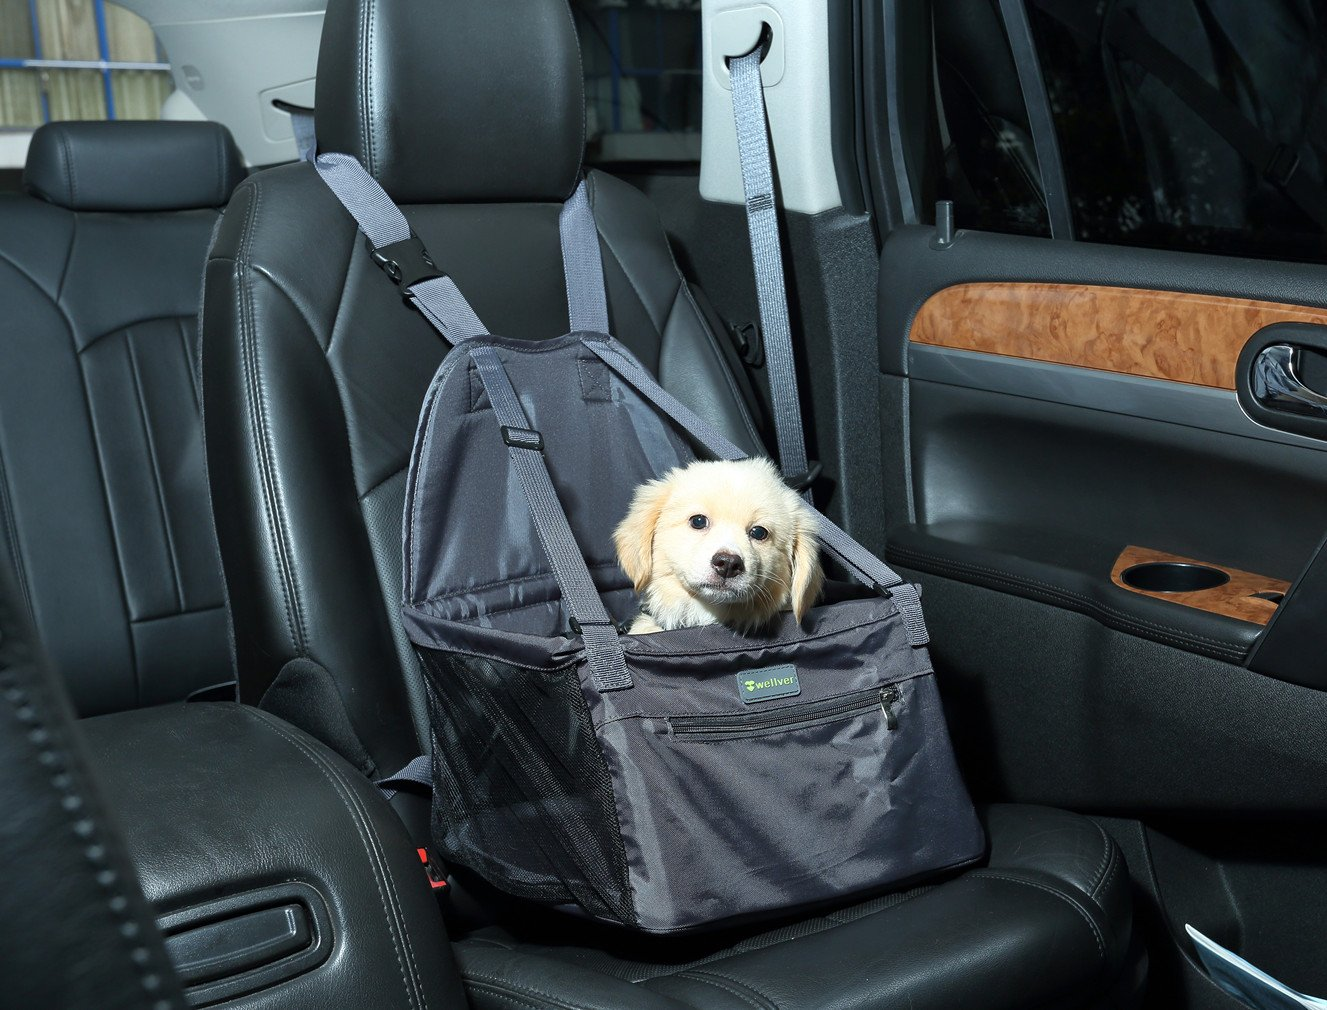 Wellver Pet Dog Car Booster Seat